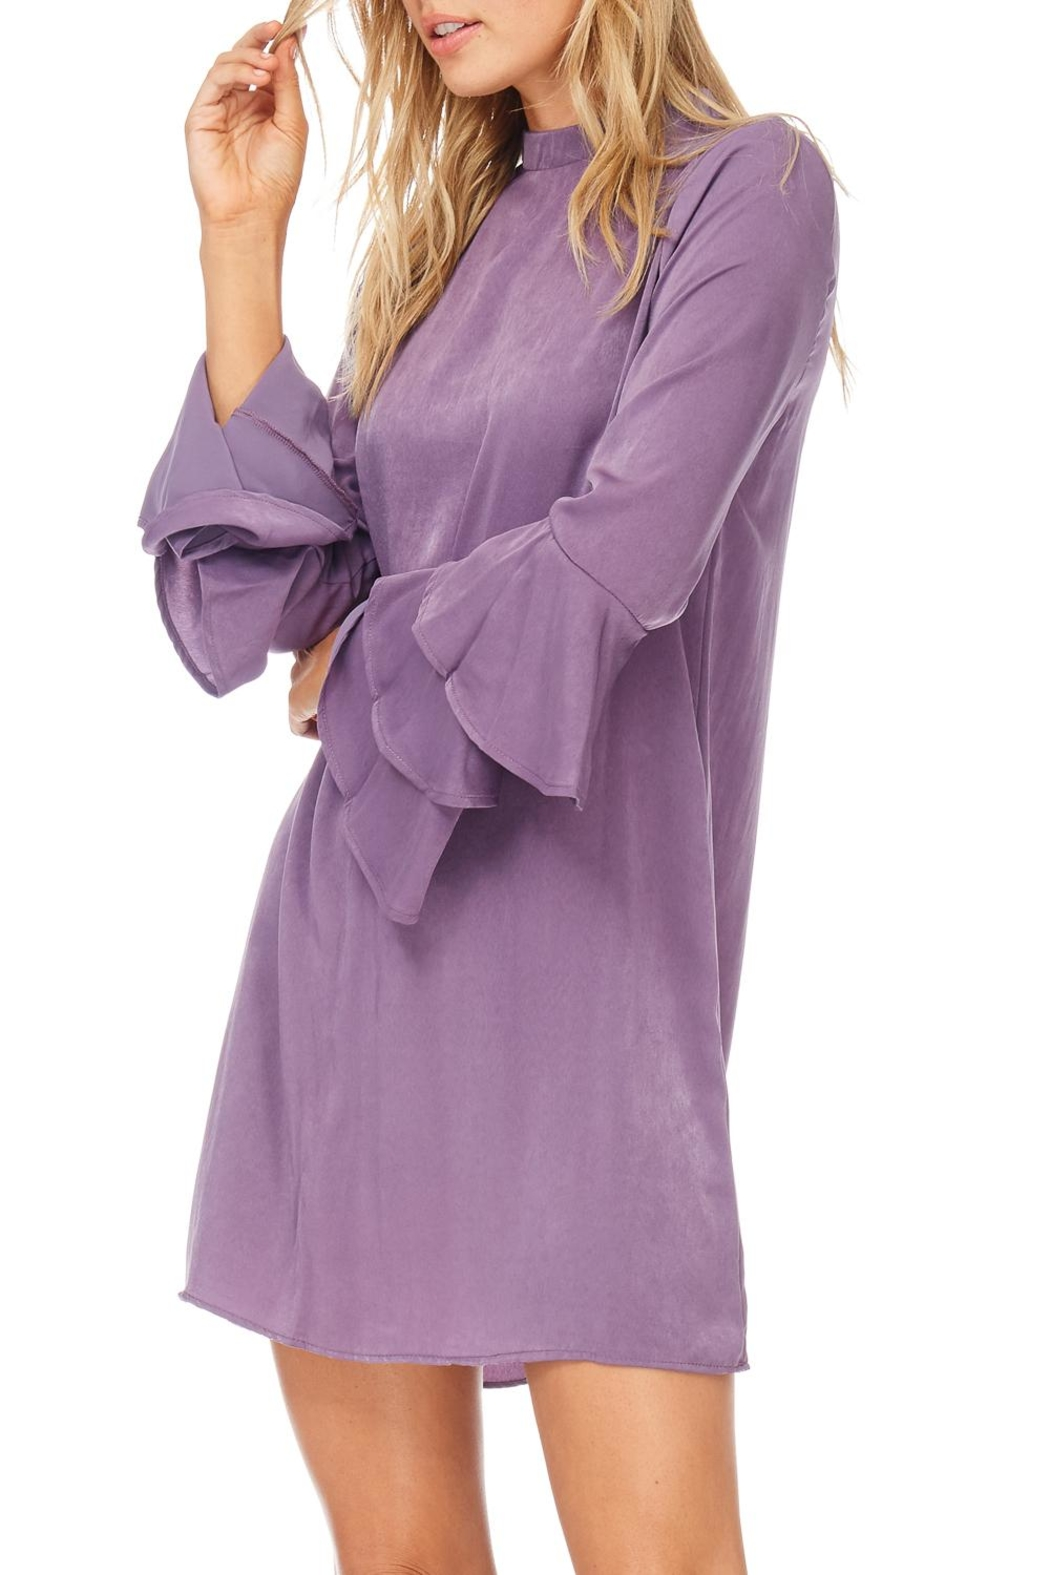 Everly Plum Silky Tiered Sleeve Dress - Main Image